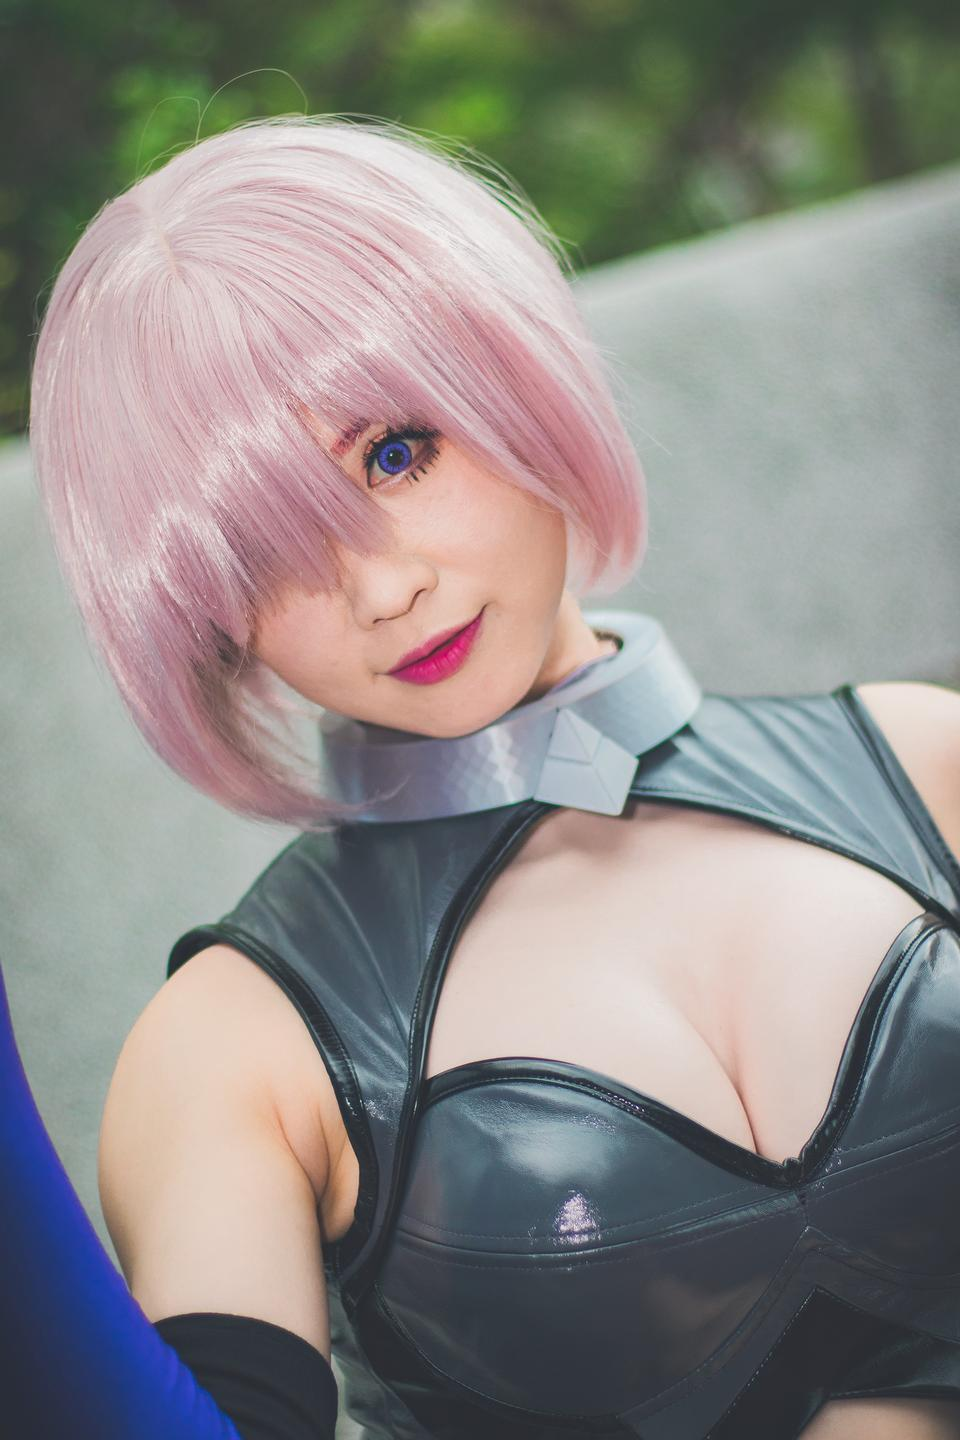 Portrait of Japan anime cosplay woman